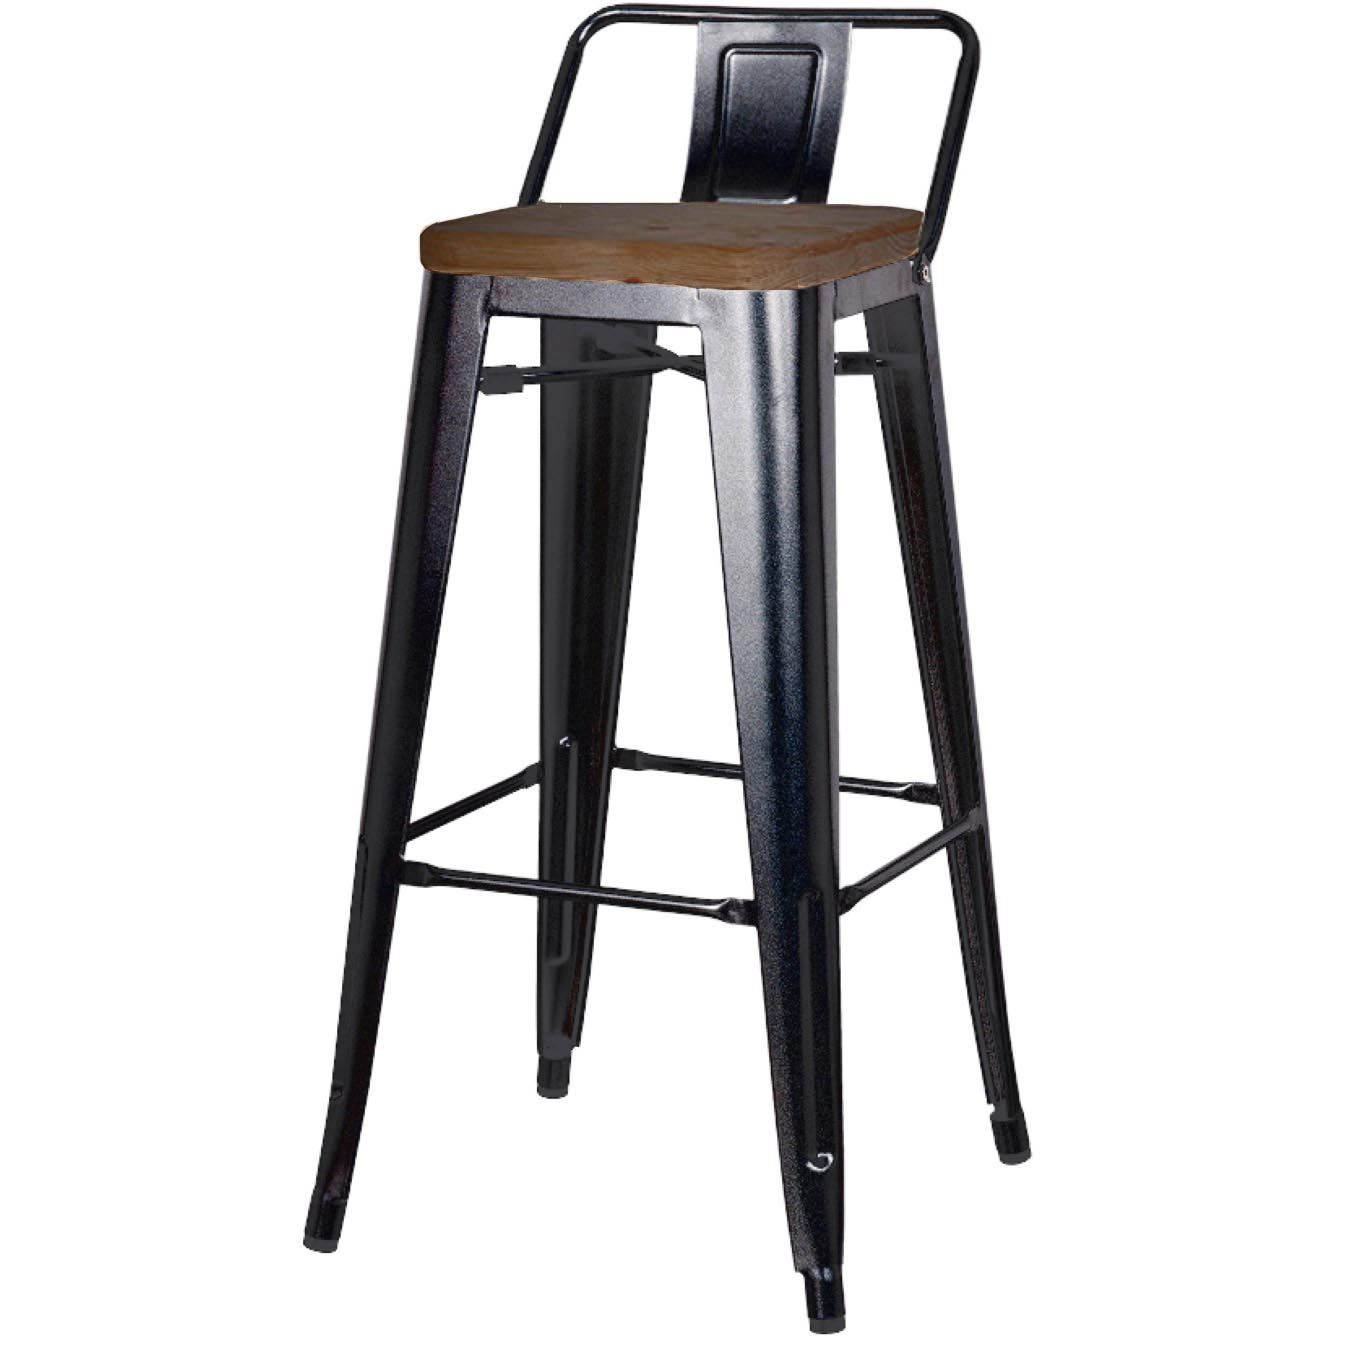 Industrial Bar Stools With Backs Metropolis Low Back Counter Stool Wood Seat Black